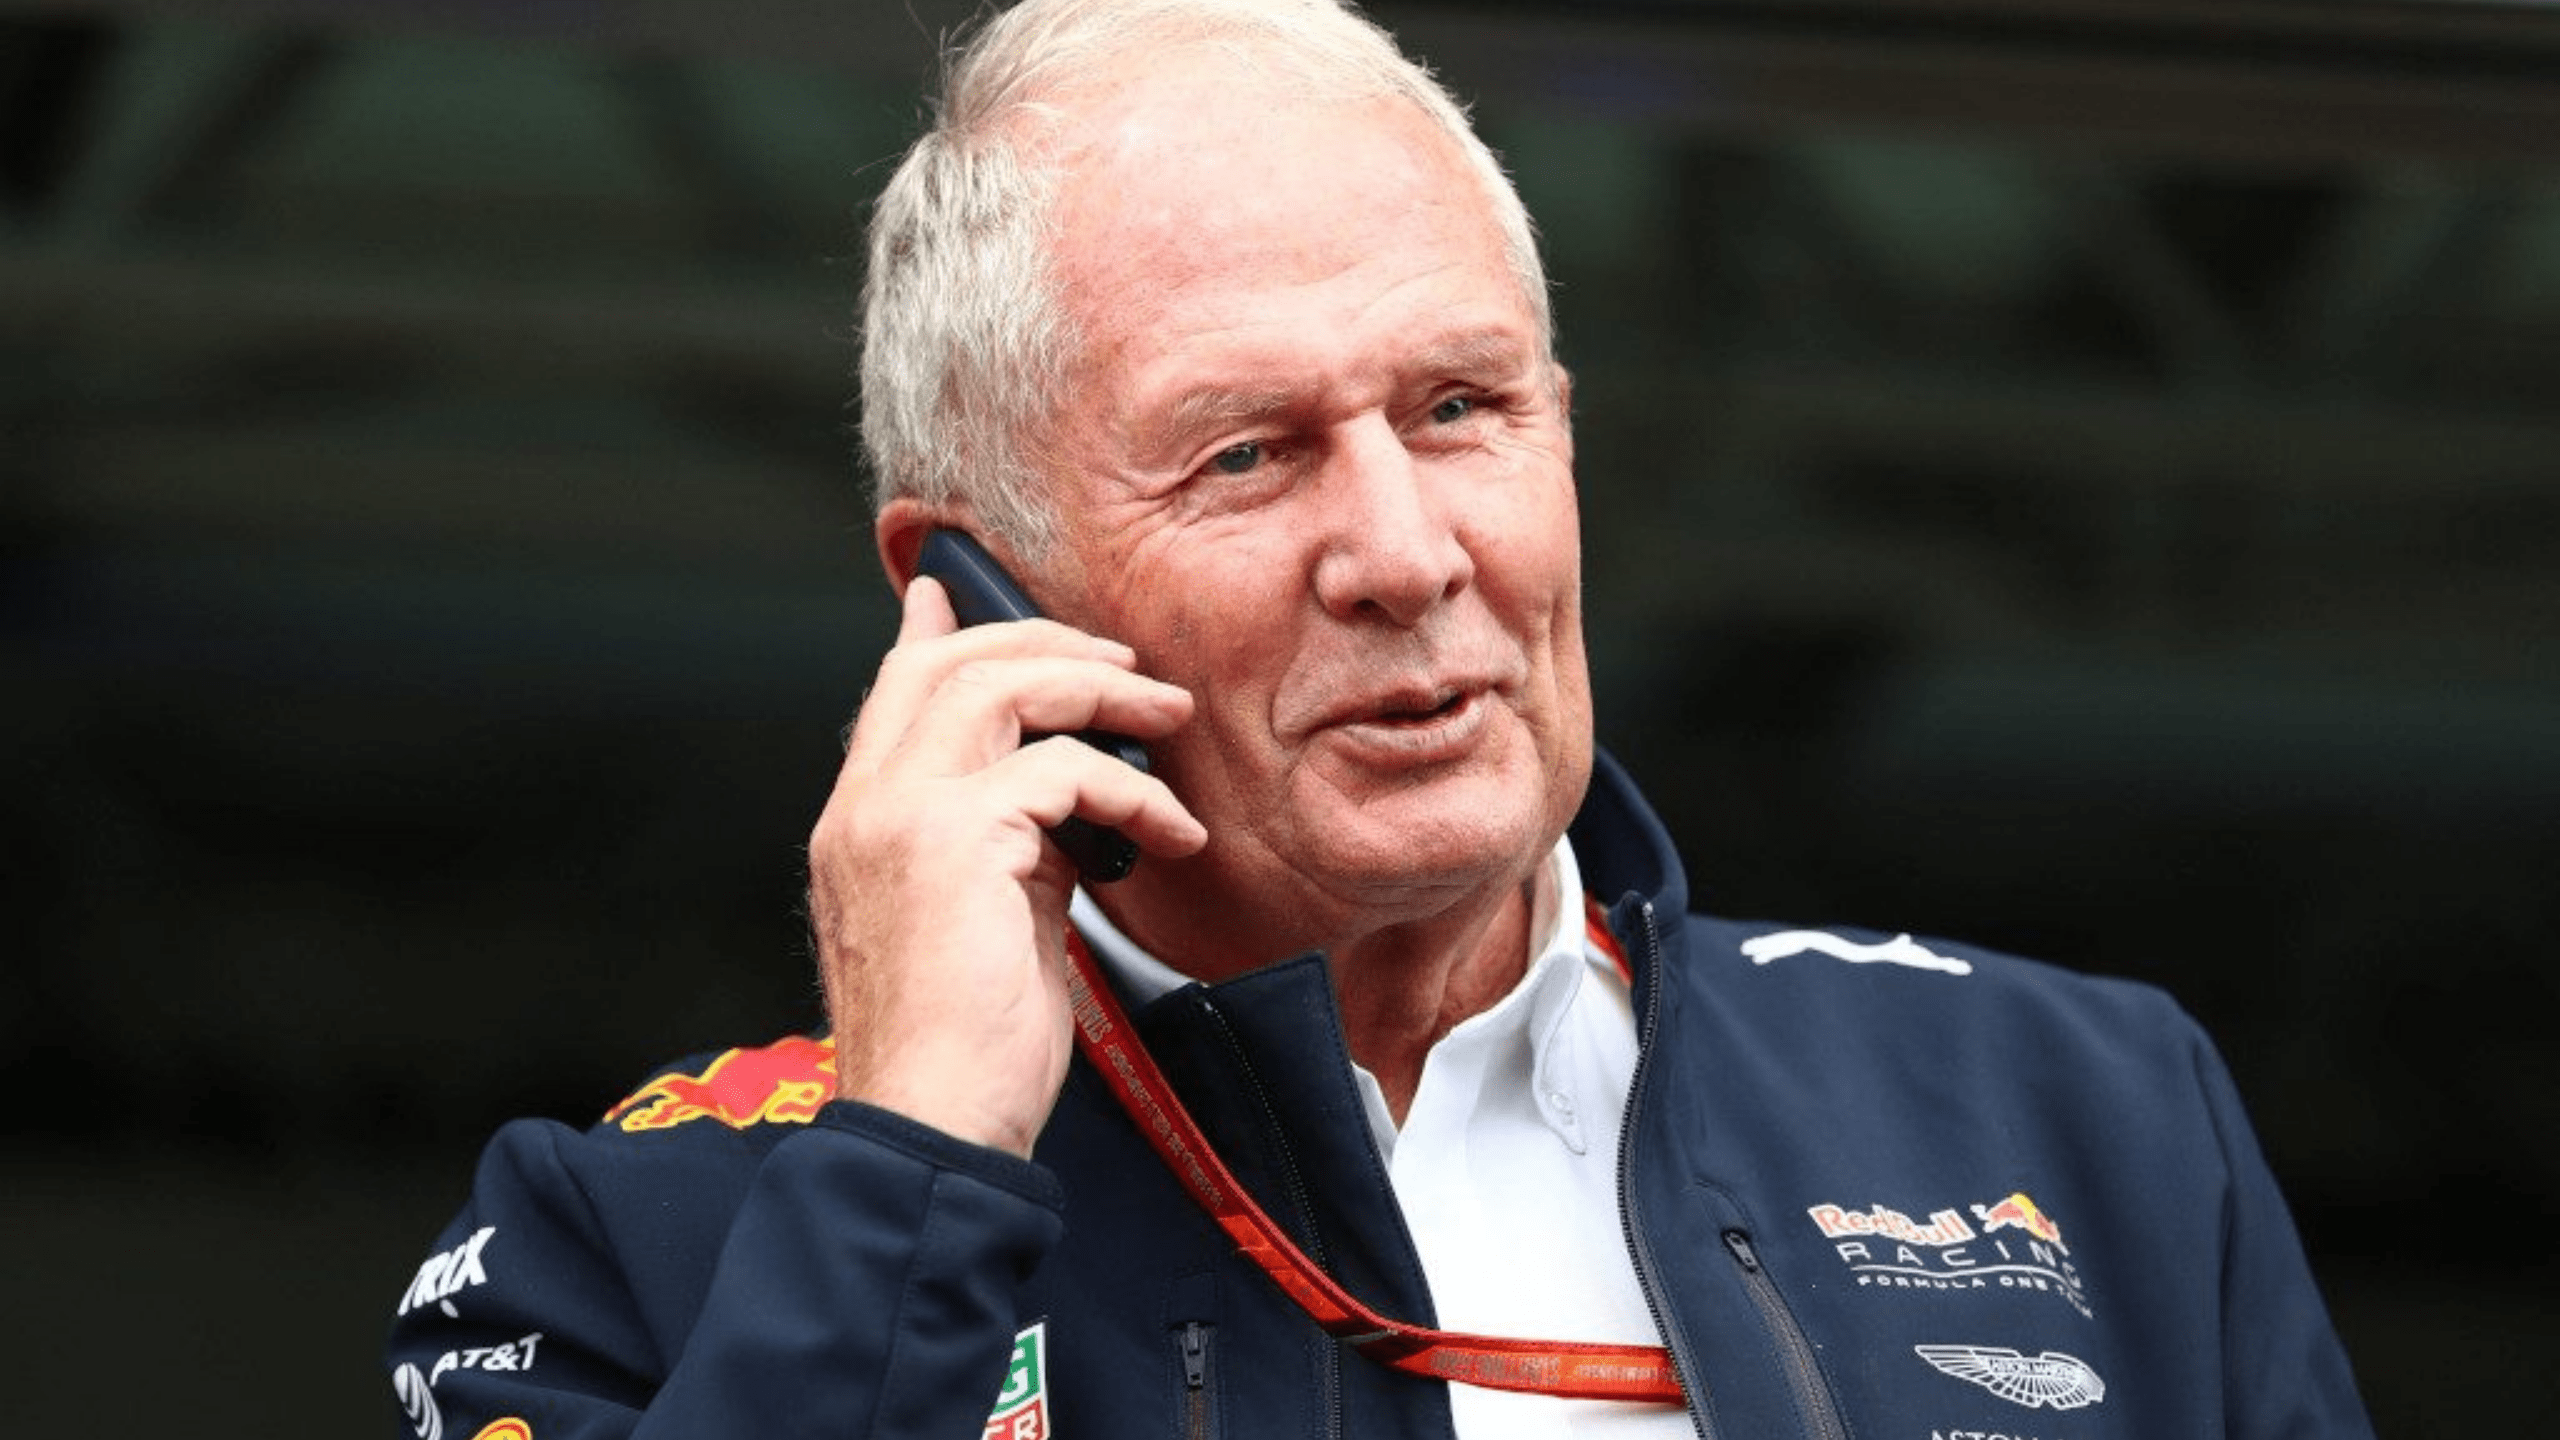 Helmut Marko: Super sub Nico Hulkenberg being considered as replacement for Alex Albon by Red Bull F1 supremo